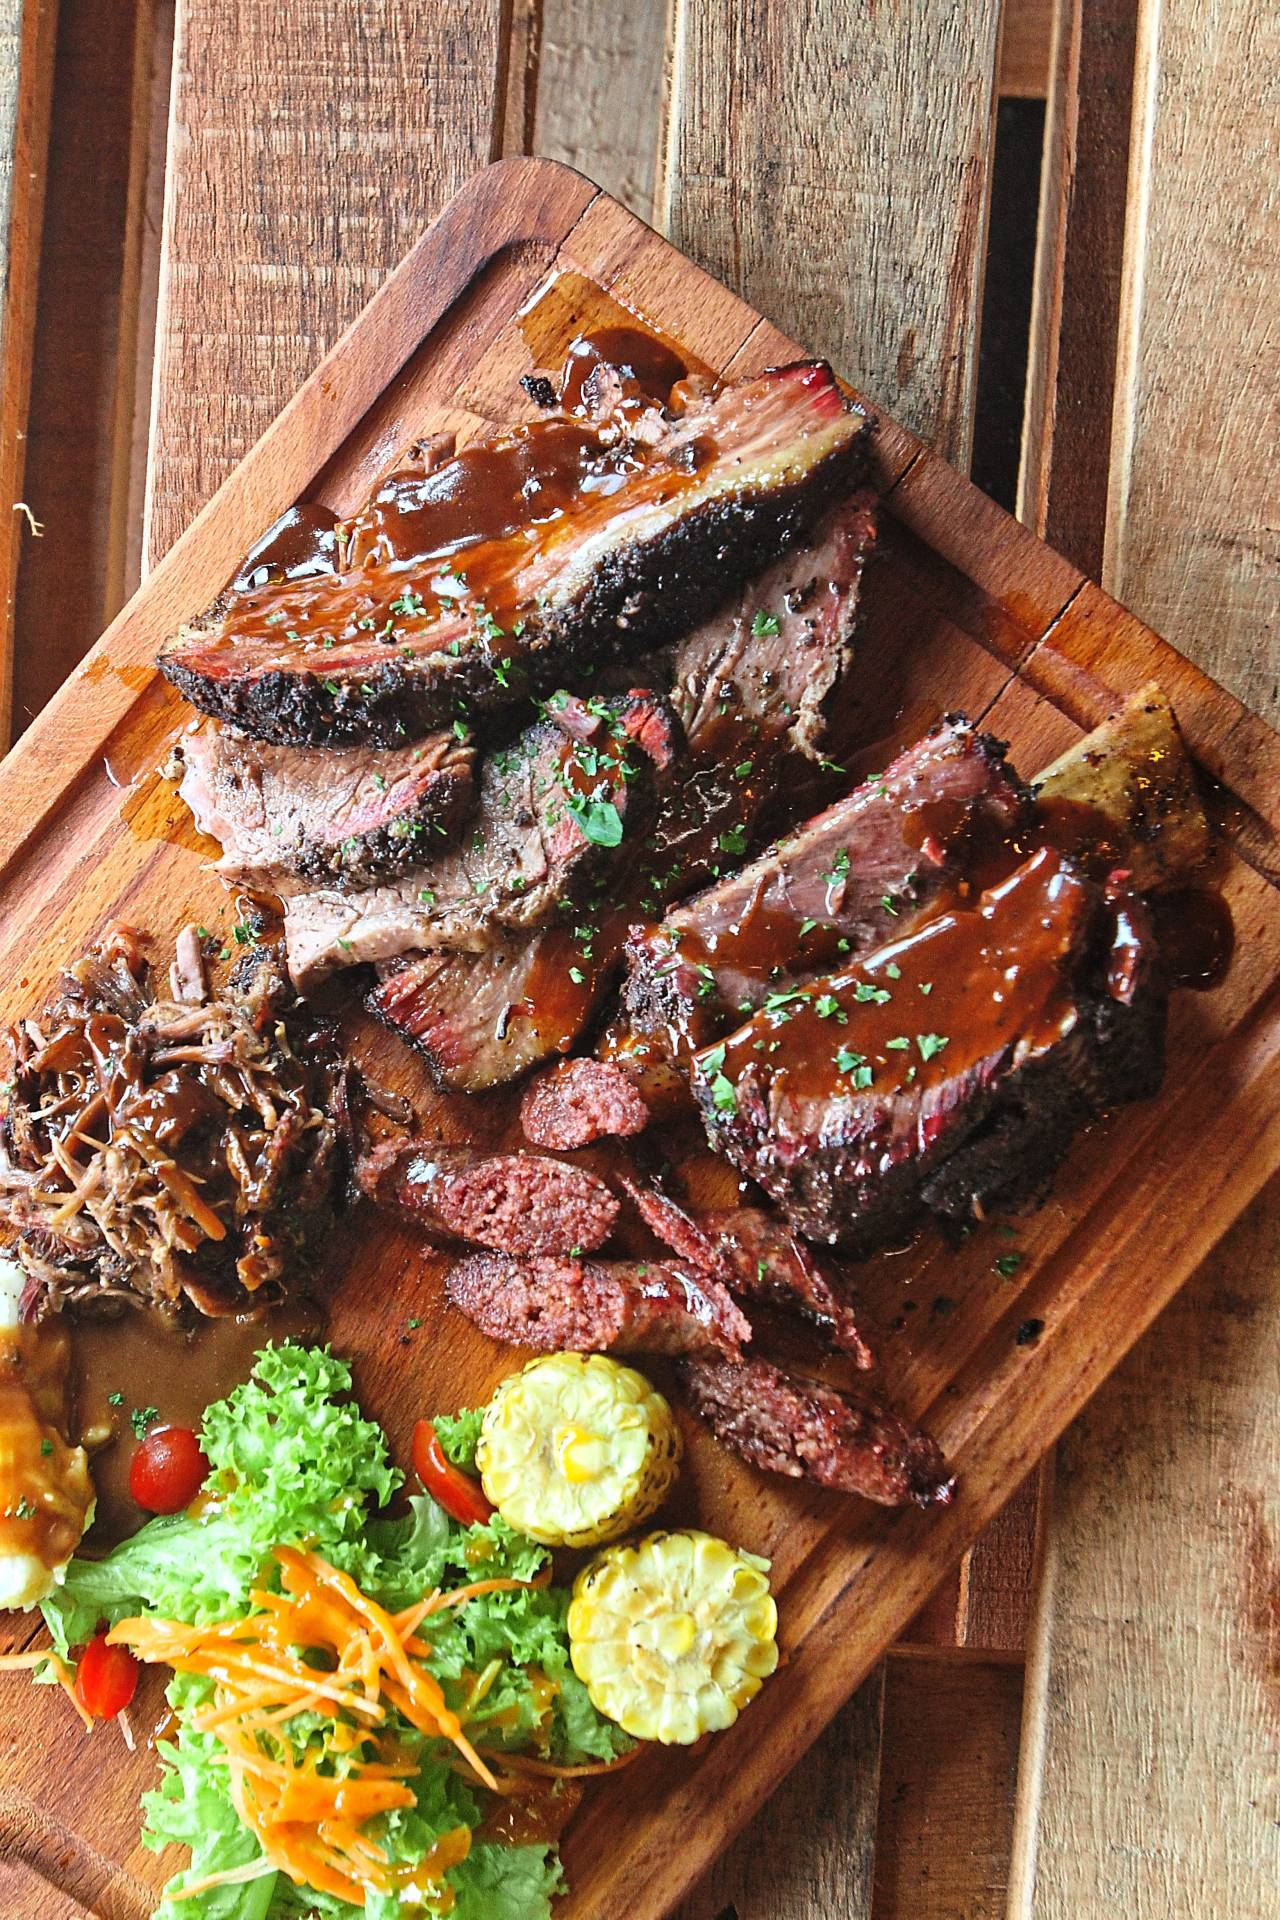 The BBQ meat platter offers smoky carnivorous options aplenty.